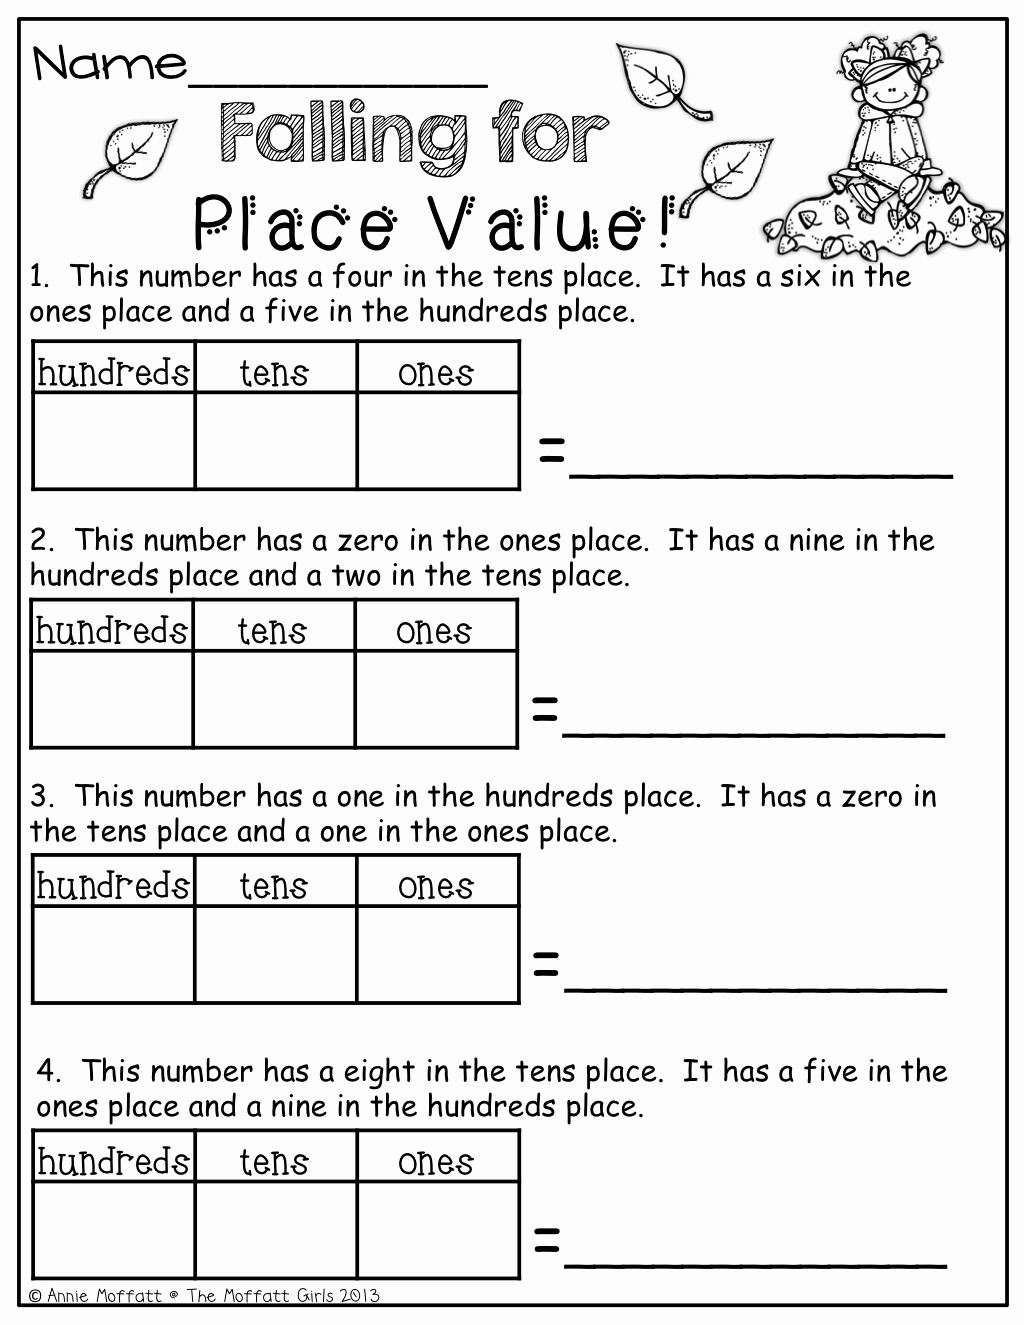 Place Value Worksheet 3rd Grade Unique 3rd Grade Place Value Worksheets Diy Worksheet